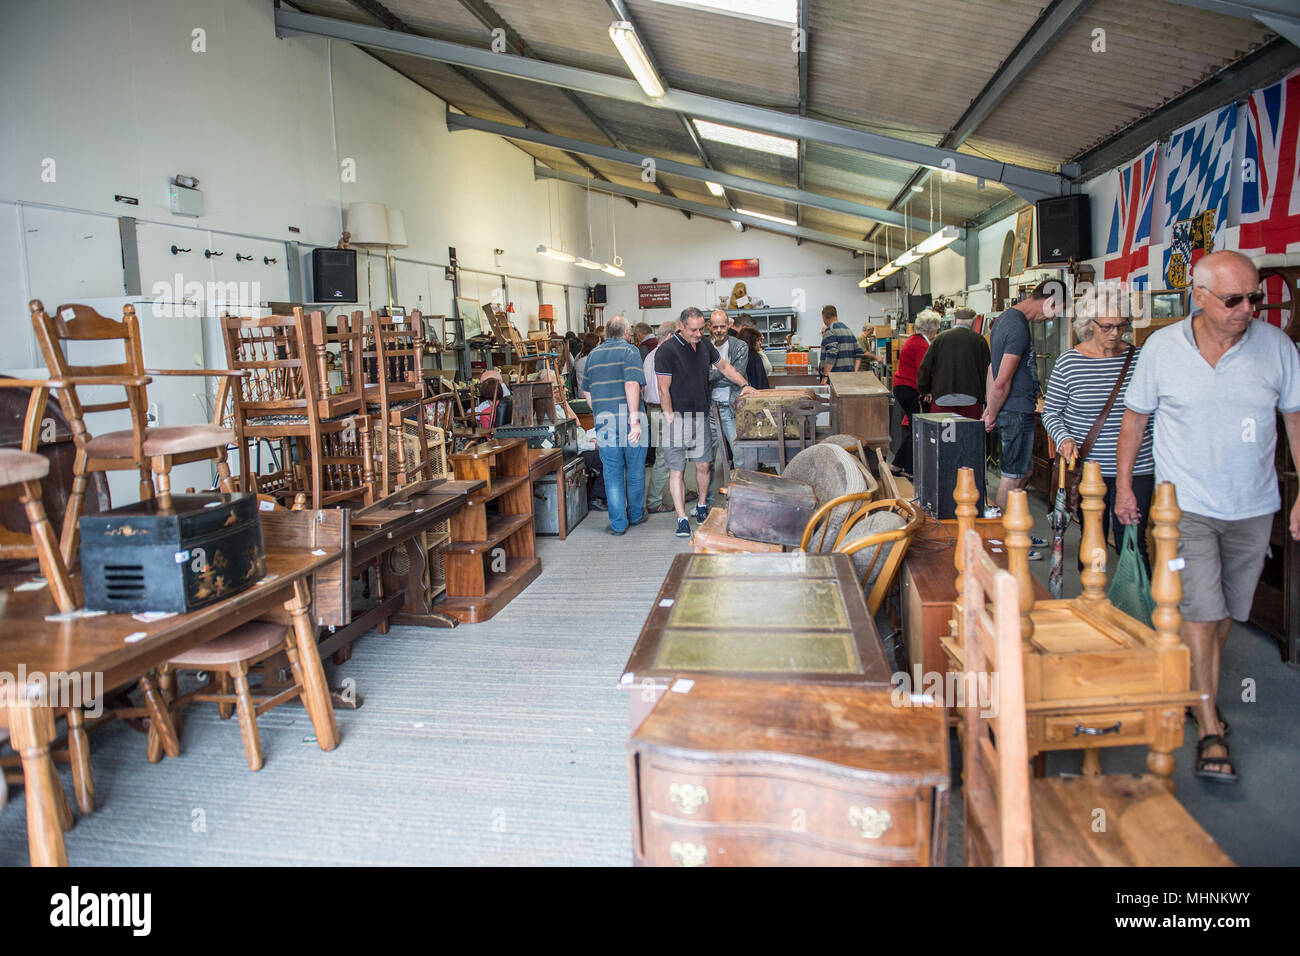 bargain hunting at auction - Stock Image